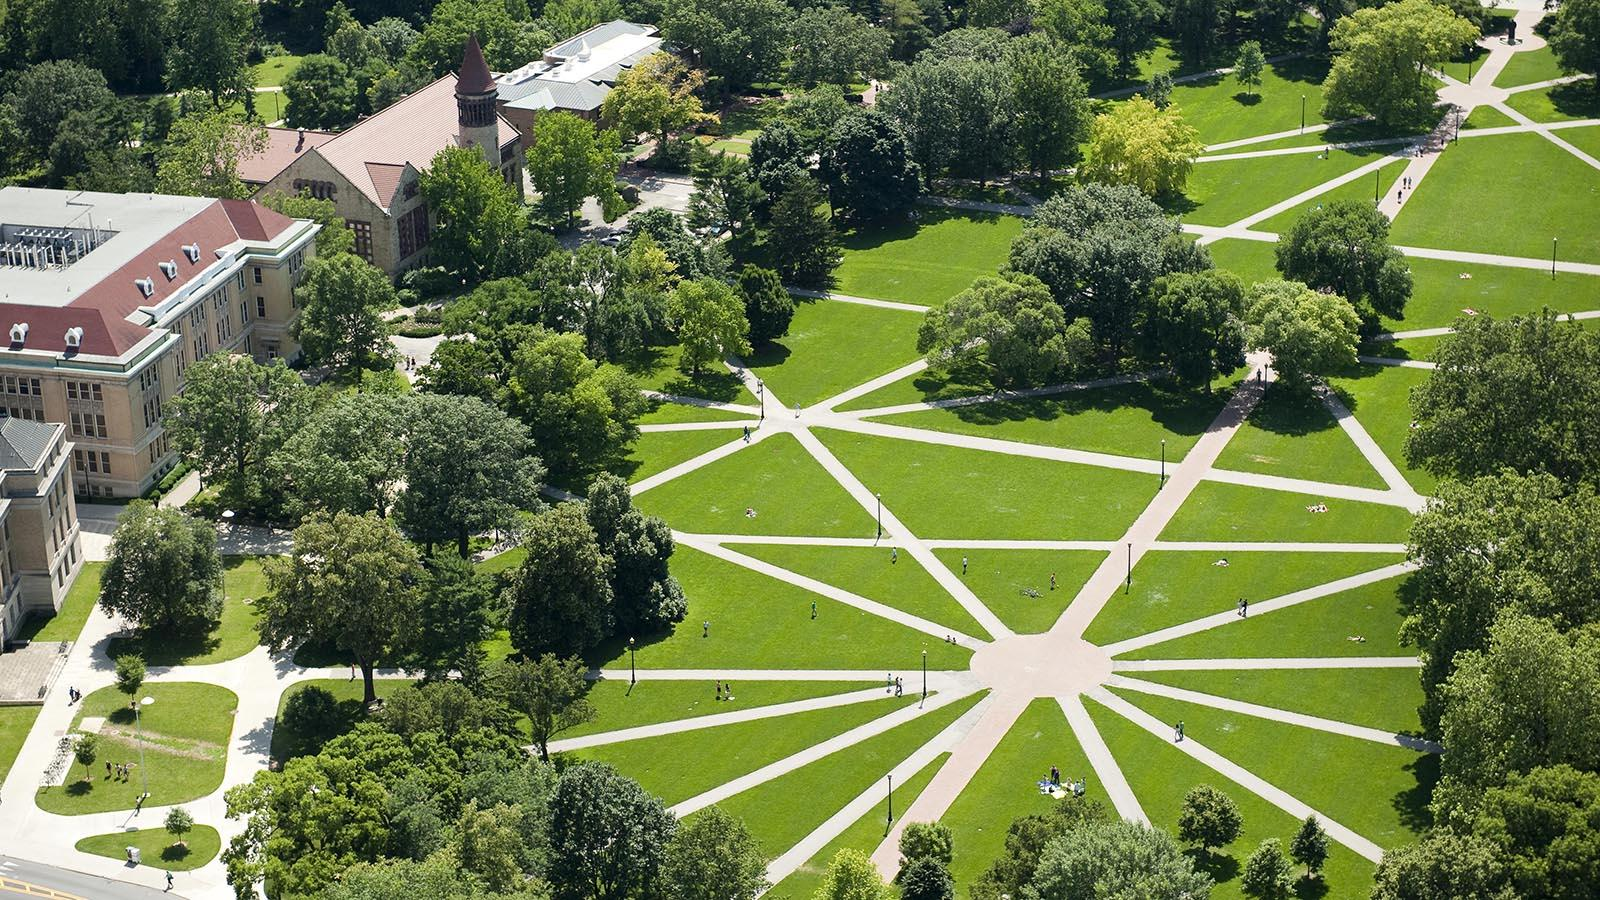 Aerial view of Ohio State Oval